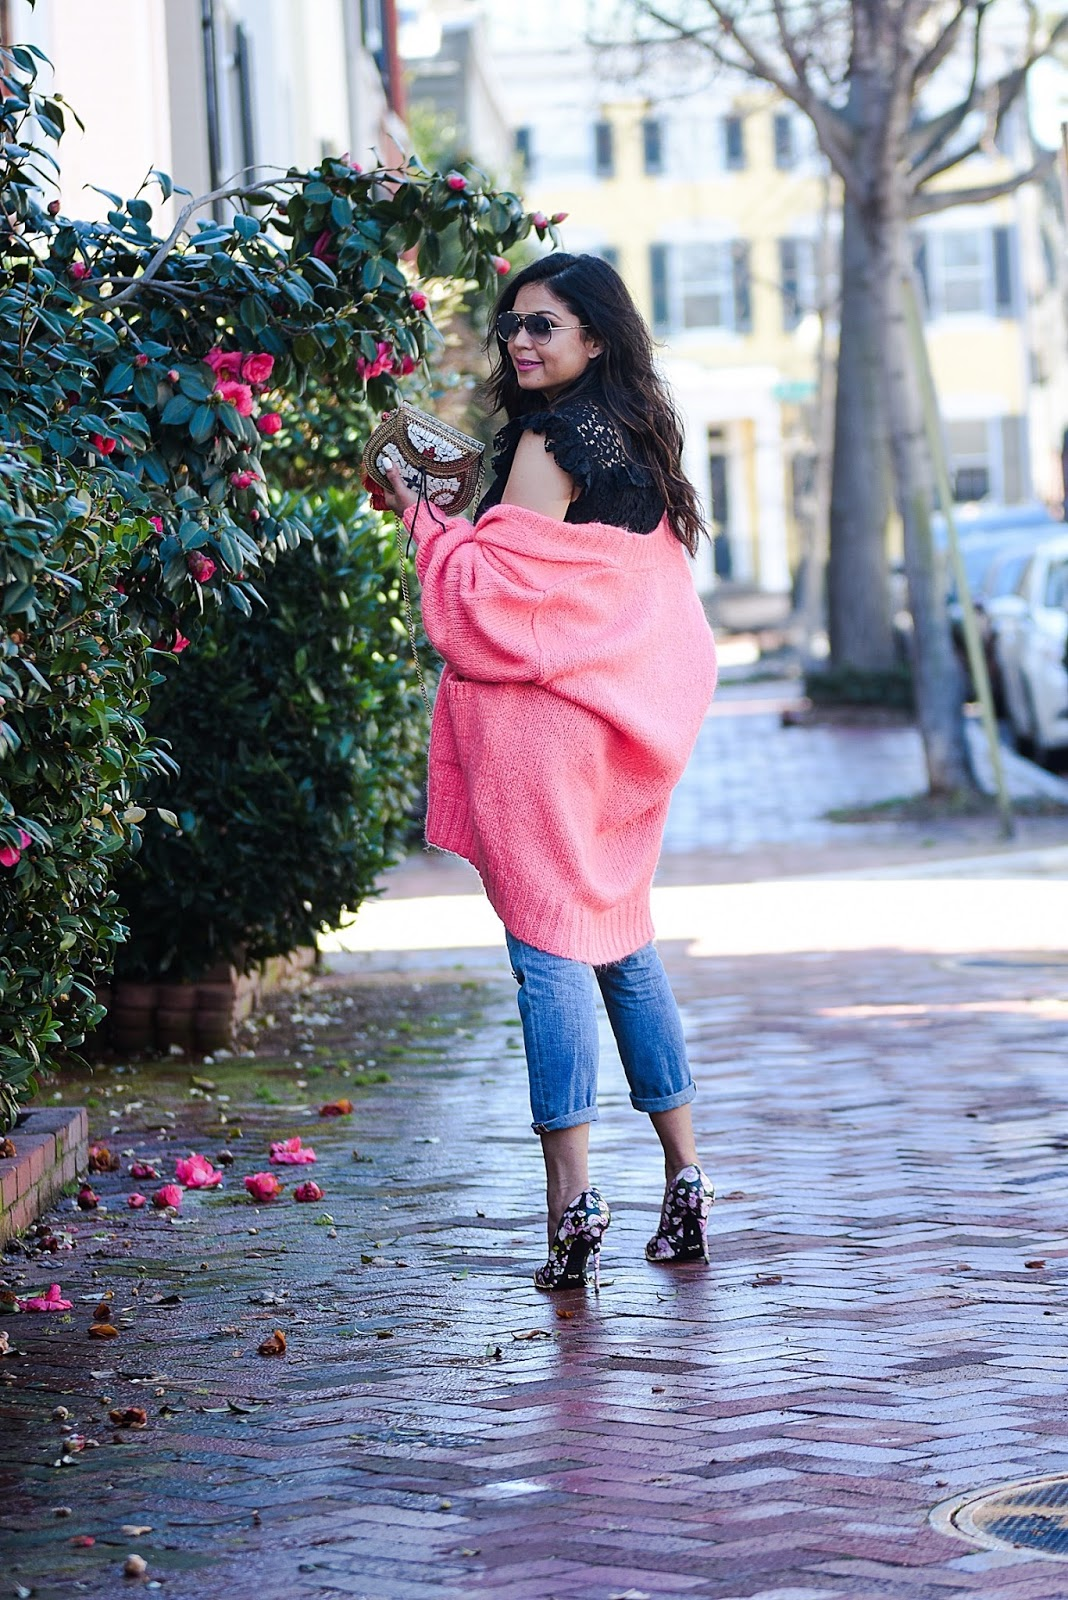 open letter to Instagram, casual style, style influencer, lace top, embellished boyfriend jeans, girlfreind jeans, floral heels, myriad musings